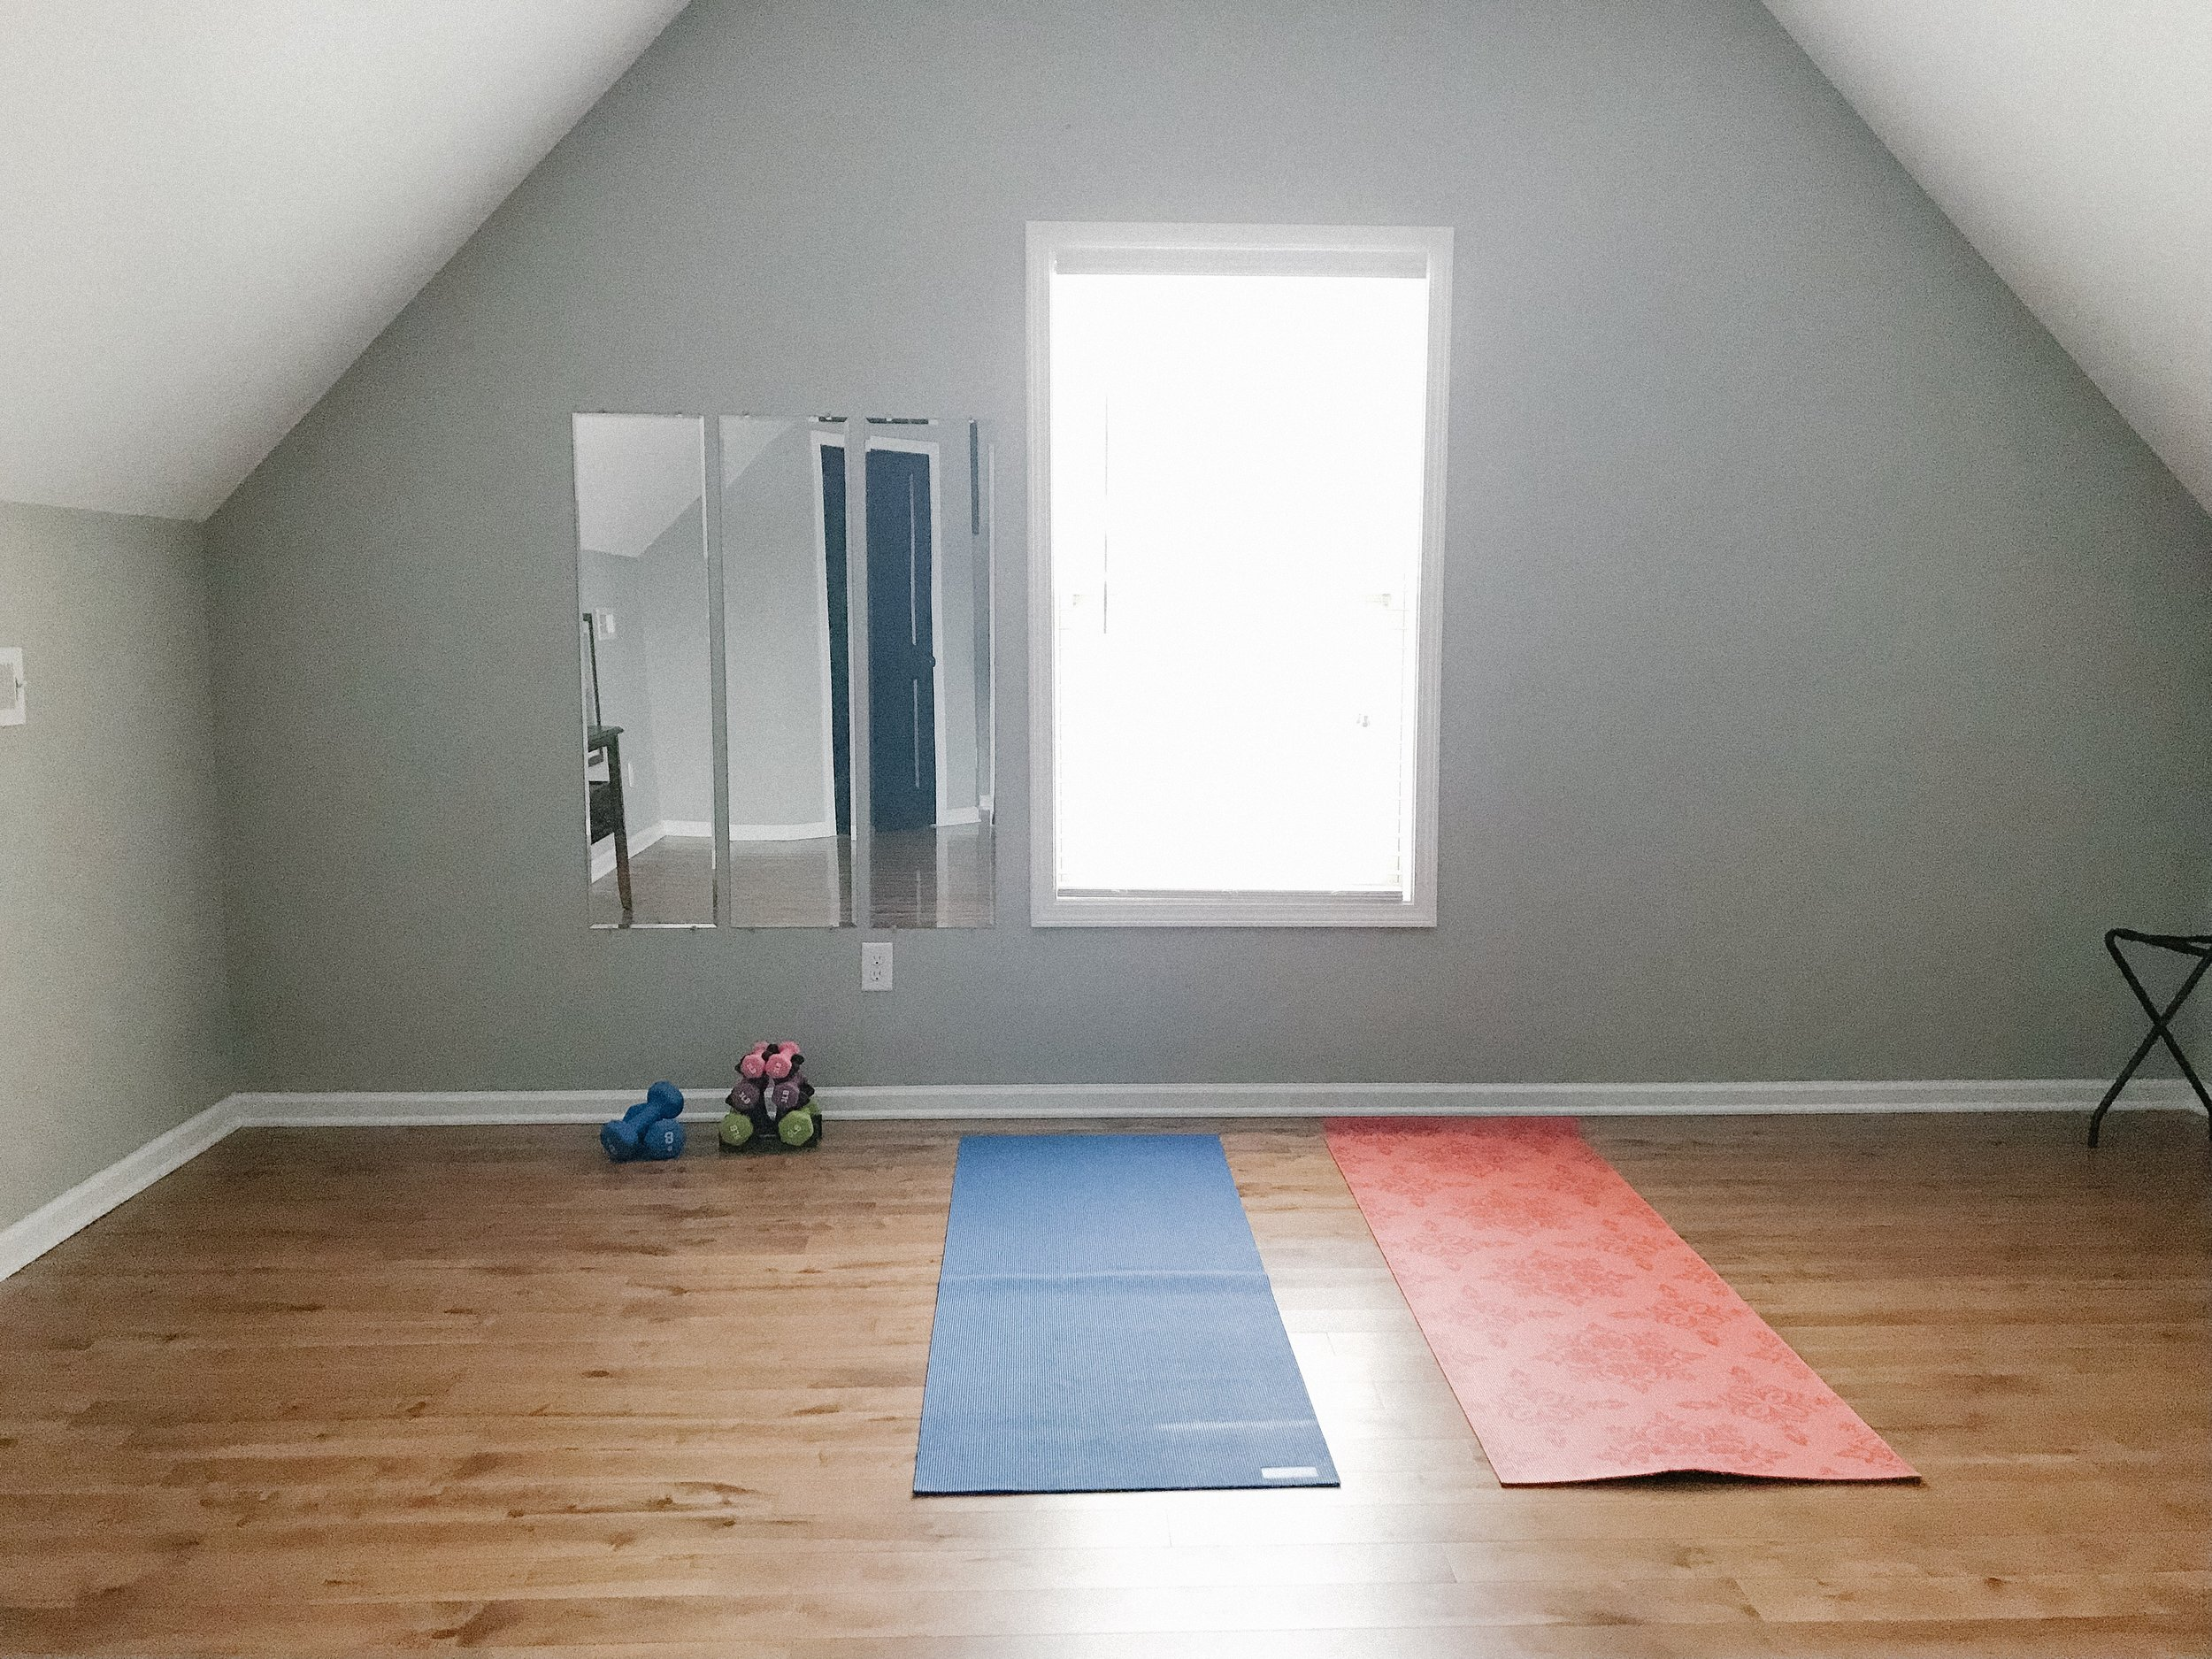 Healthy Lifestyle Food and Exercise Inspiration: Home Gym